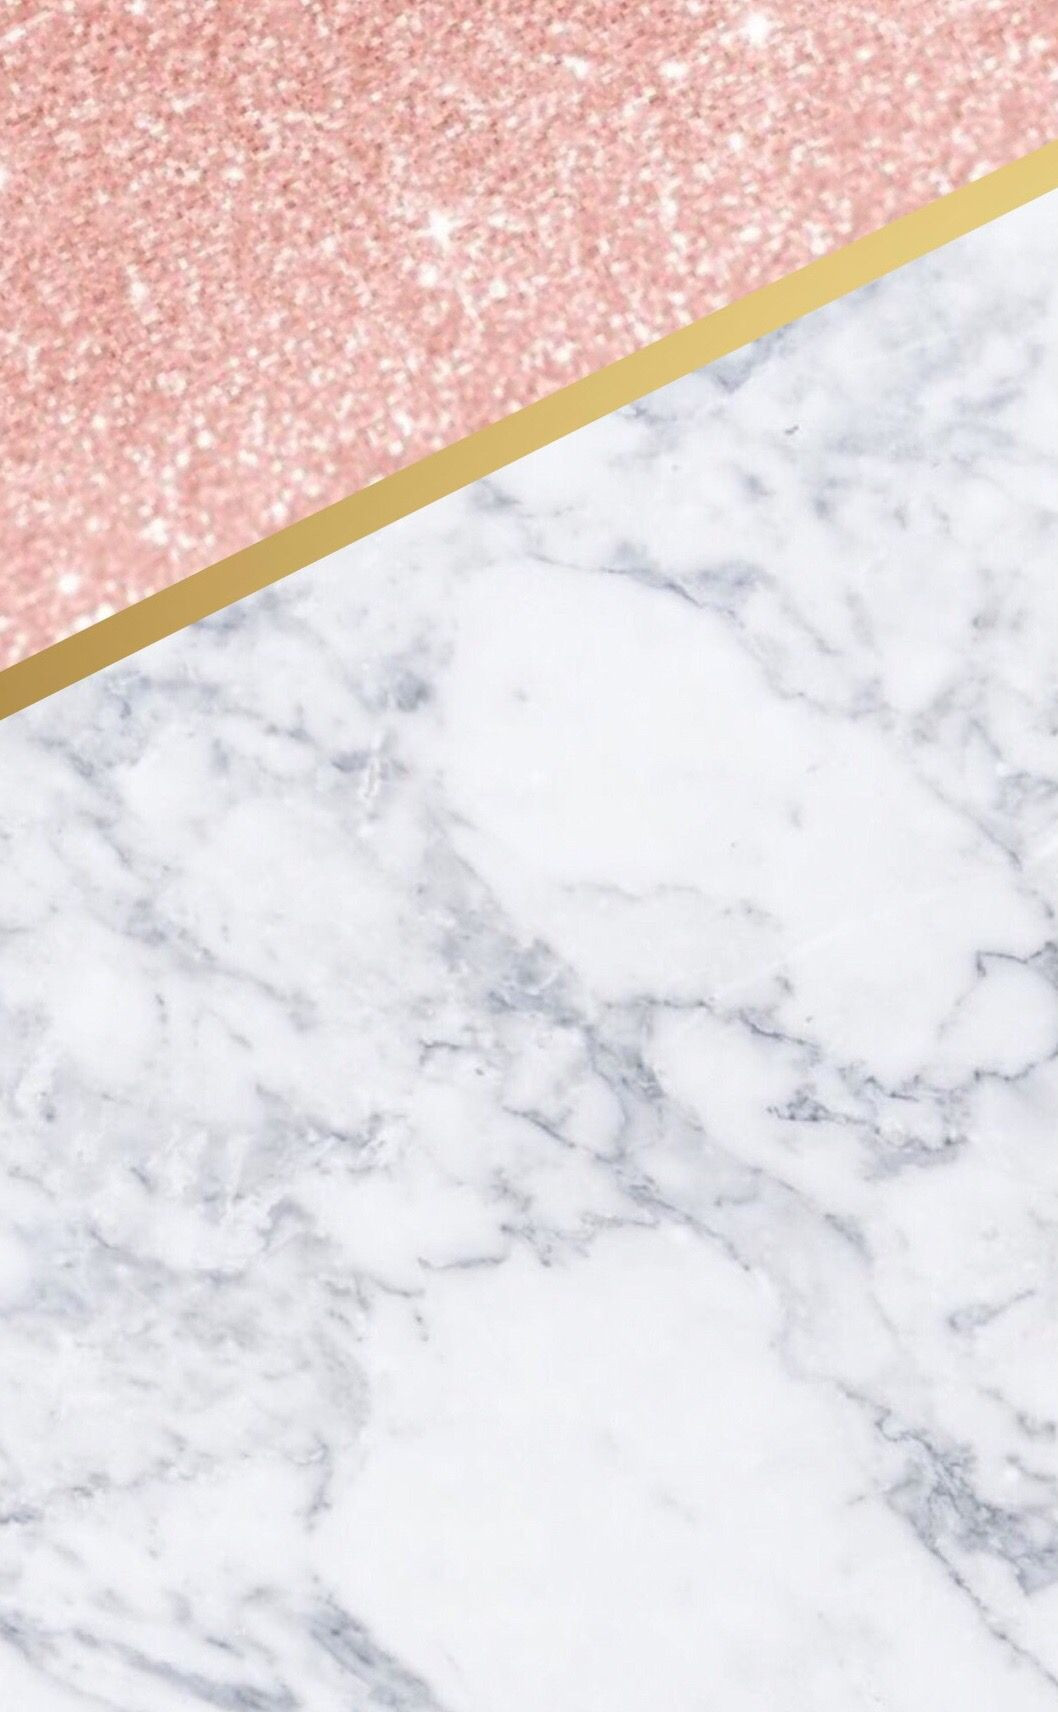 Thumb Image Rose Gold Wallpaper Marble 296952 Hd Wallpaper Backgrounds Download